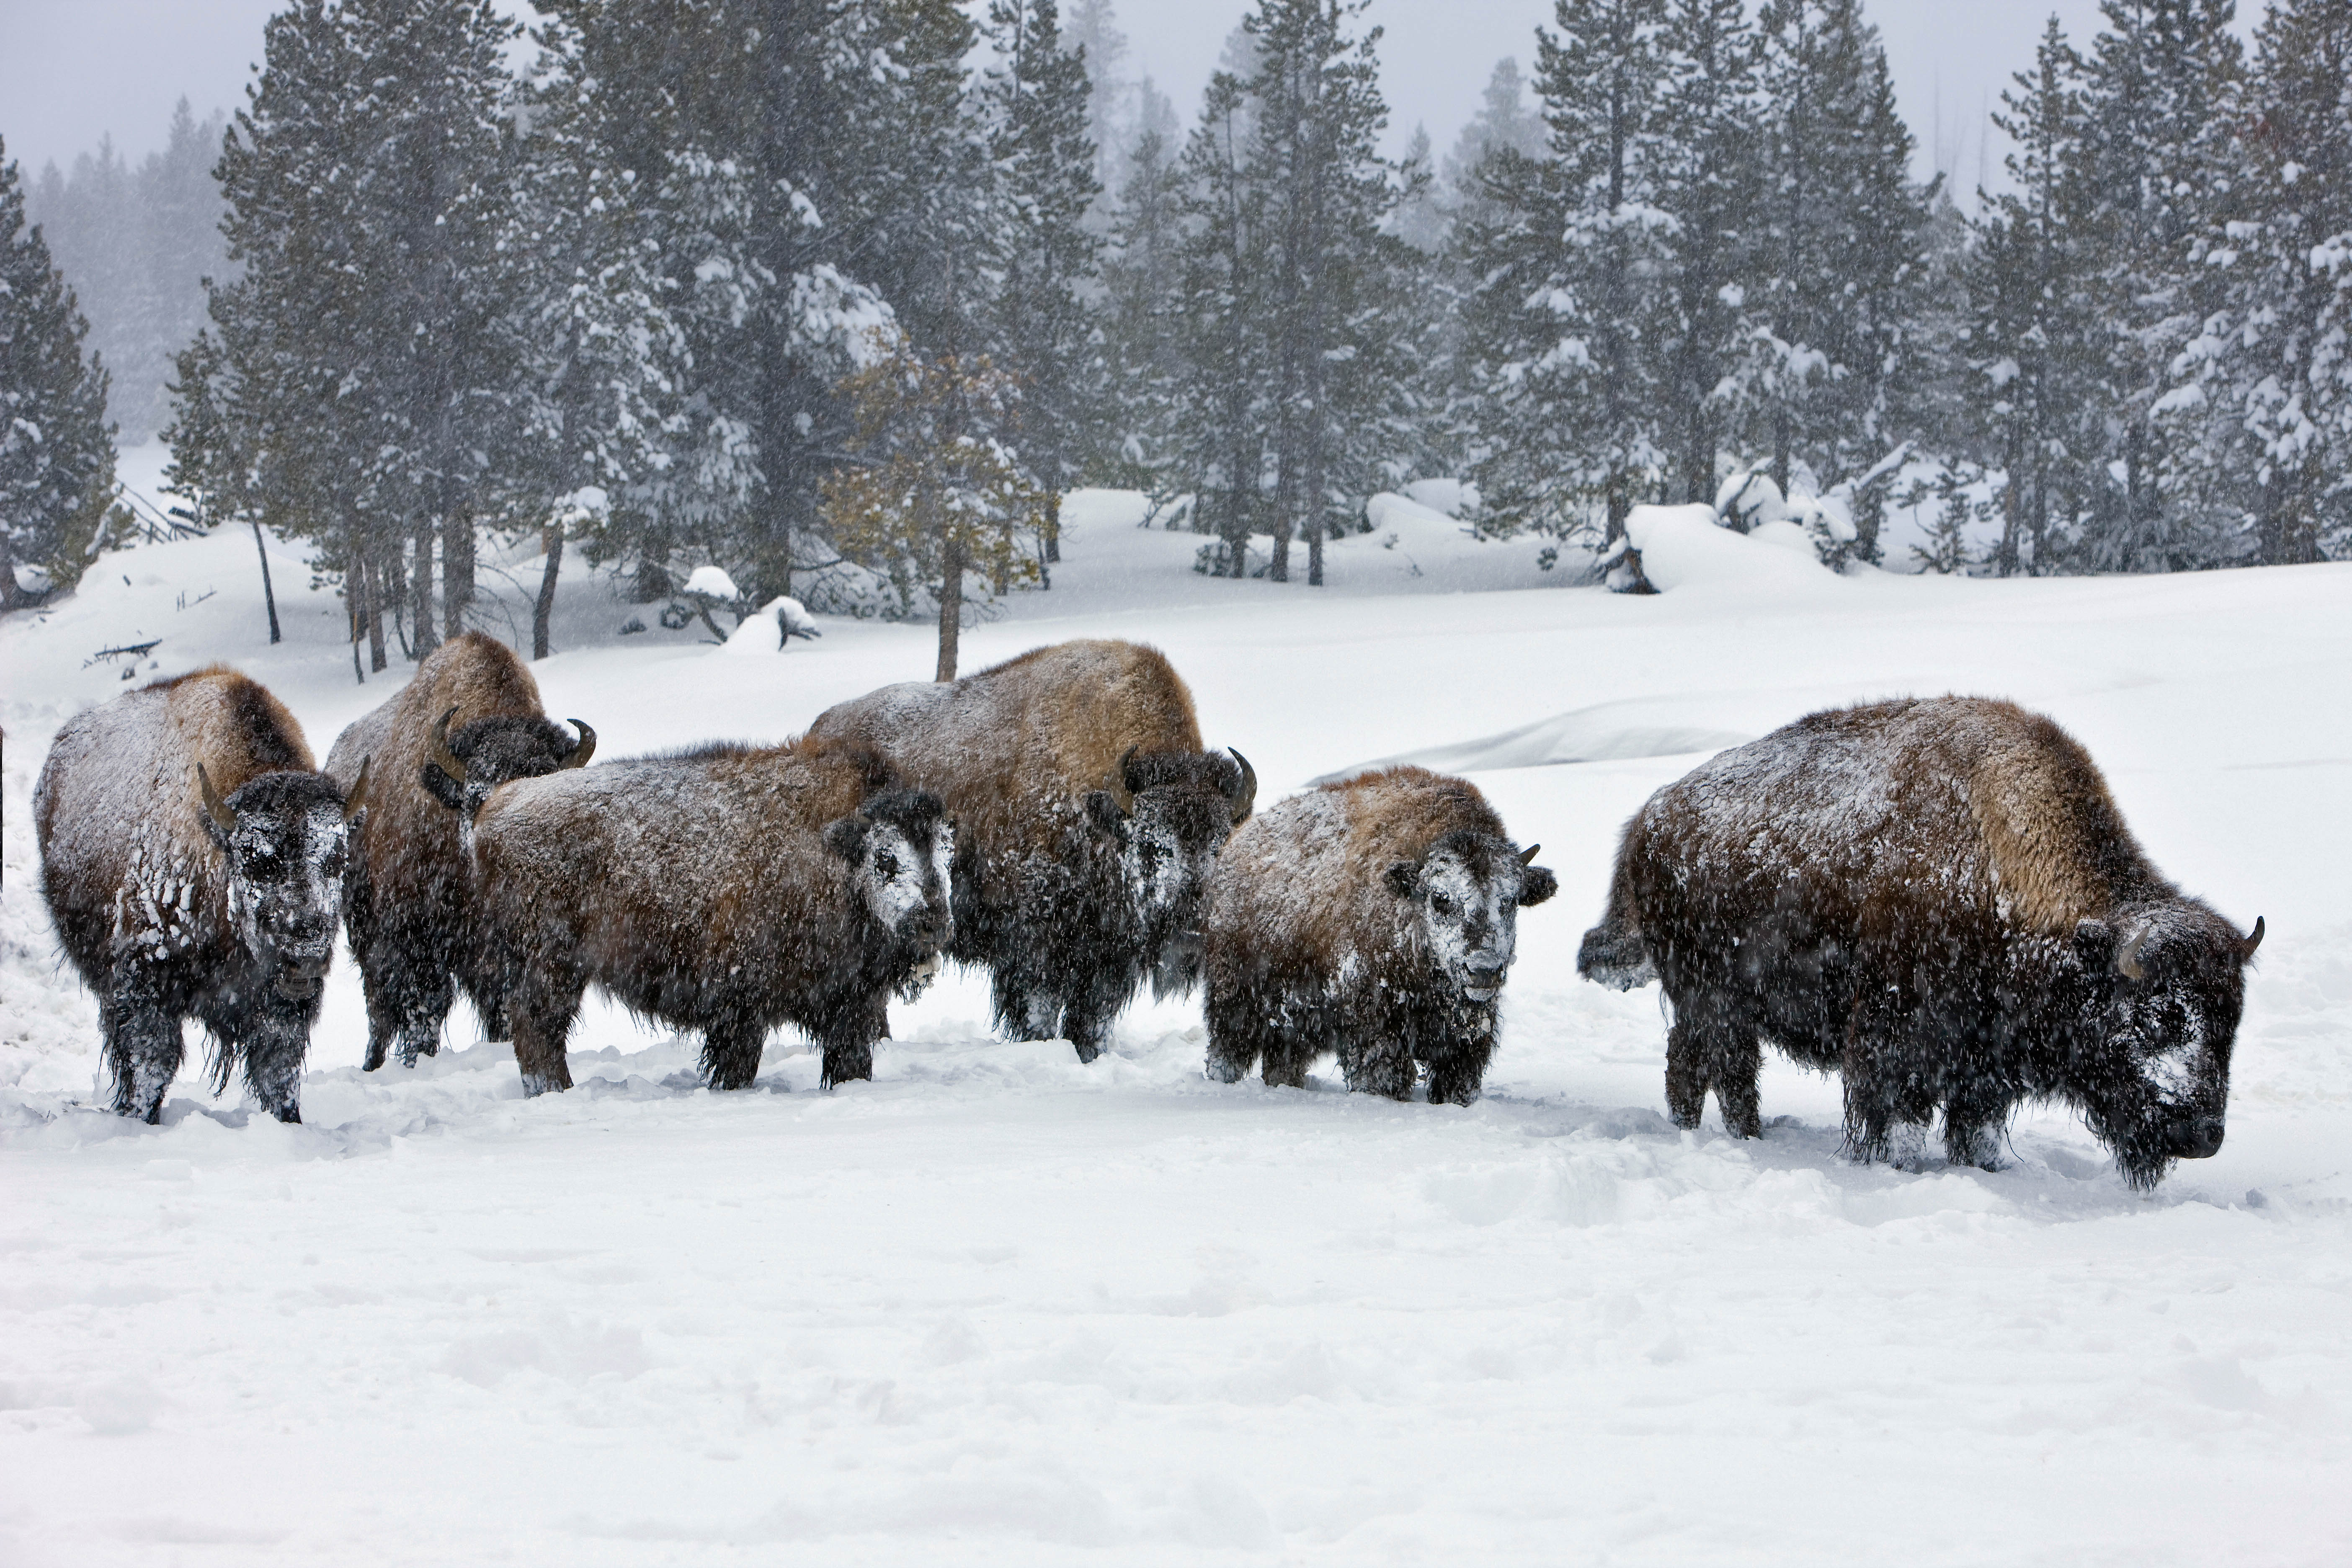 Buffalo wintering in the Upper Geyser Basin. Yellowstone National Park, Wyoming. Jeff Vanuga Photo.